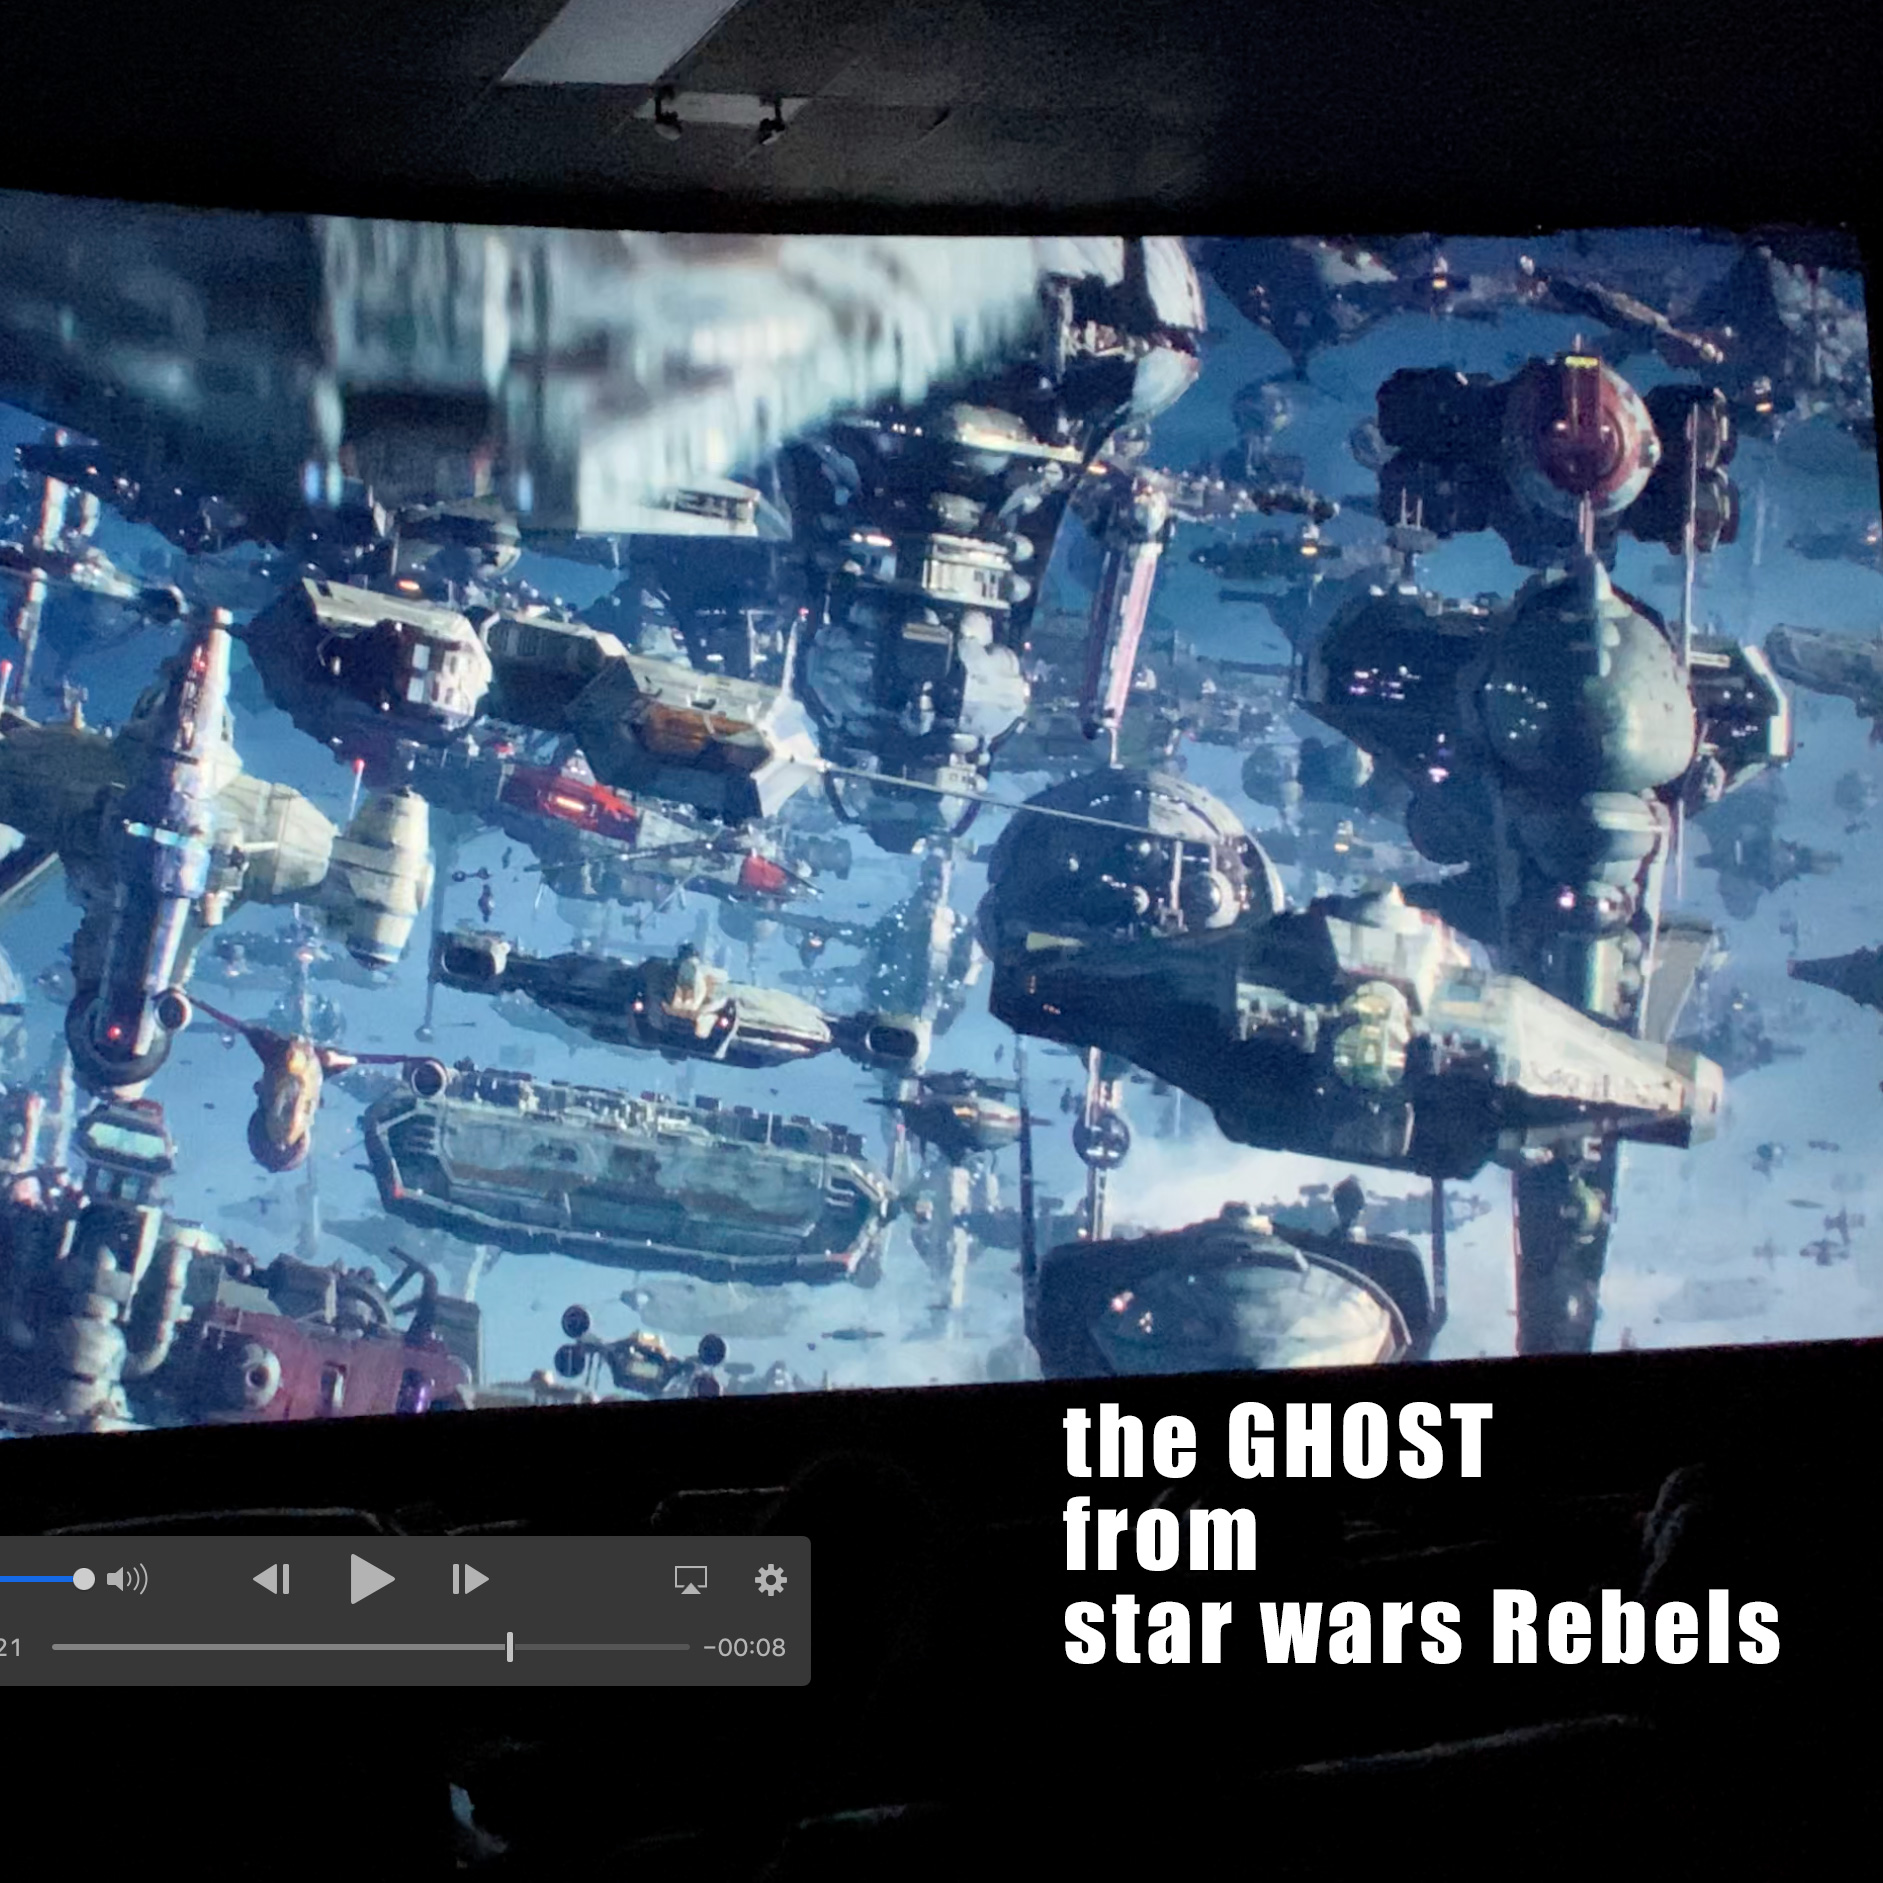 Ghost From Star Wars Rebels In The Final Trailer For Star Wars The Rise Of Skywalker Trailerdetails